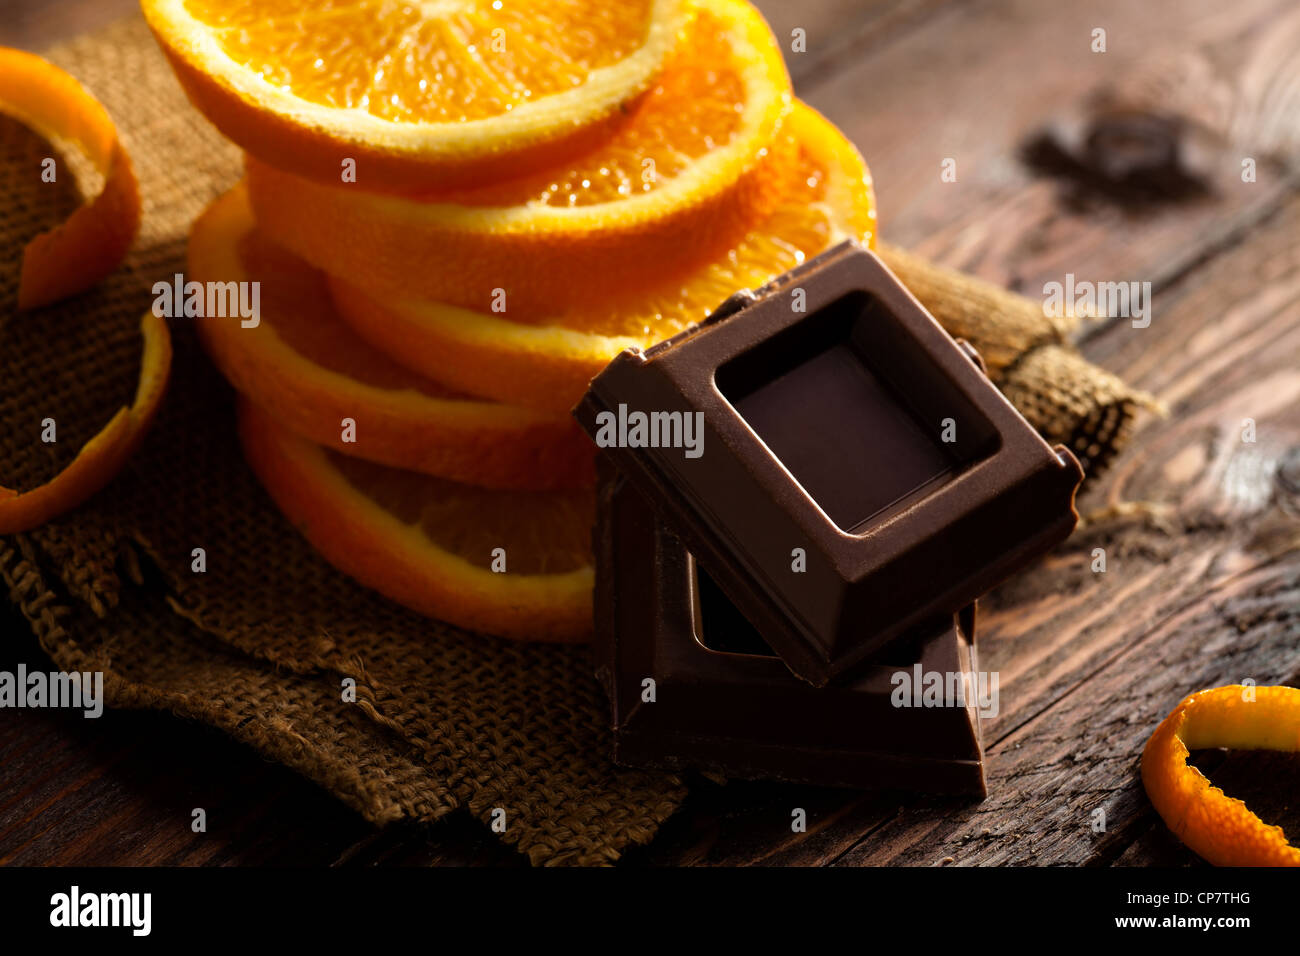 Chocolate Squares with Orange Slices on Jute and Wood - Stock Image